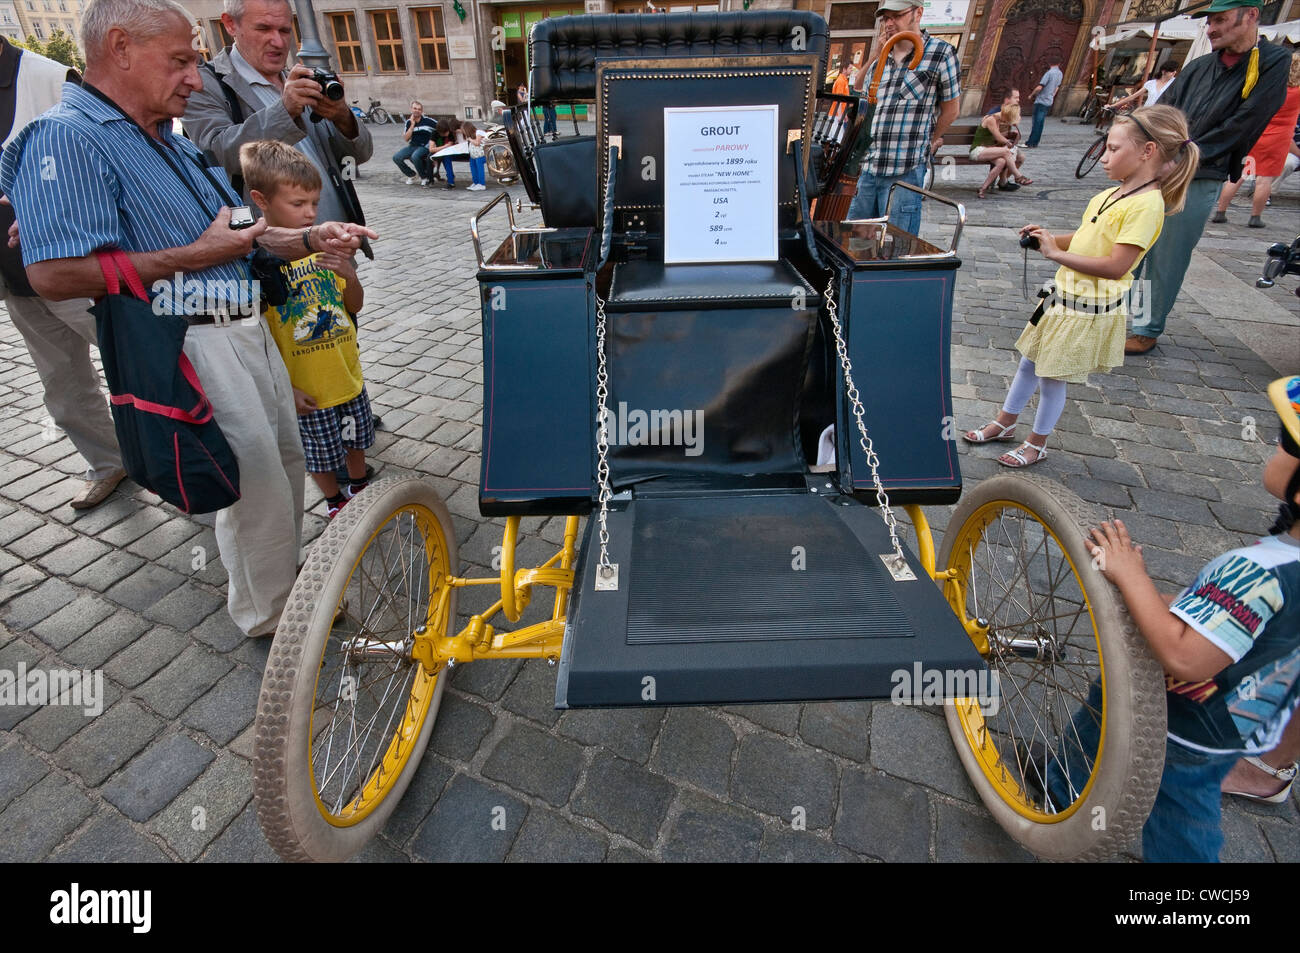 1899 Grout Steam New Home, steam powered automobile at Motoclassic car show at Rynek (Market Square) in Wroclaw, - Stock Image